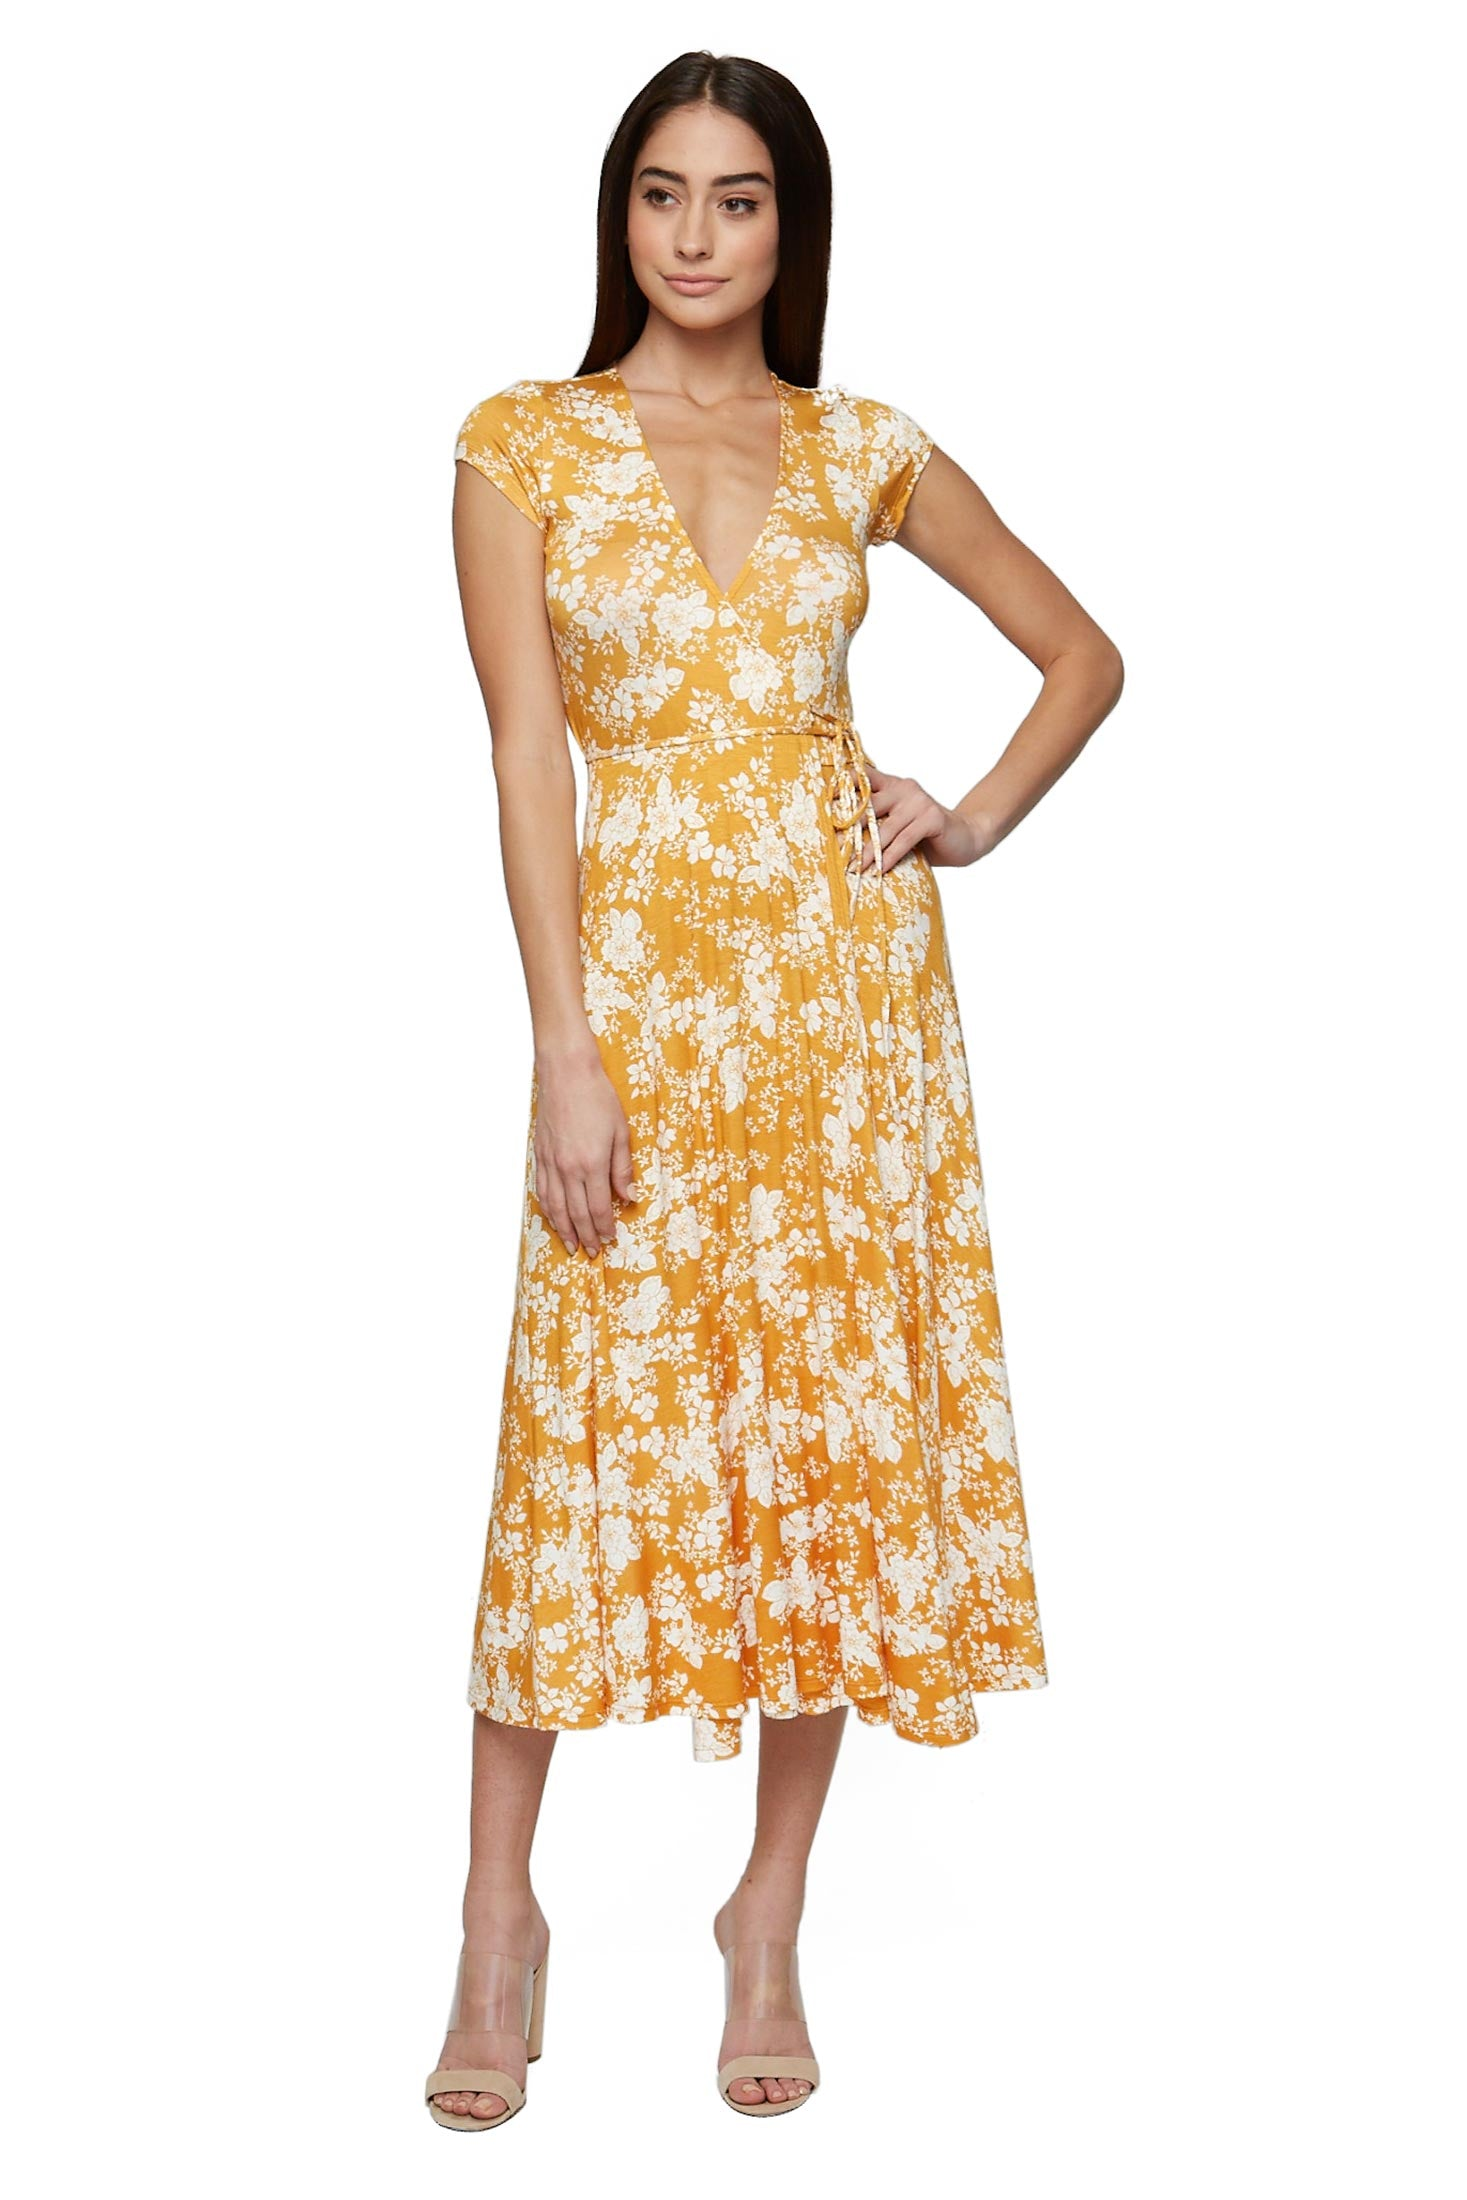 Farley Wrap Dress - Posy